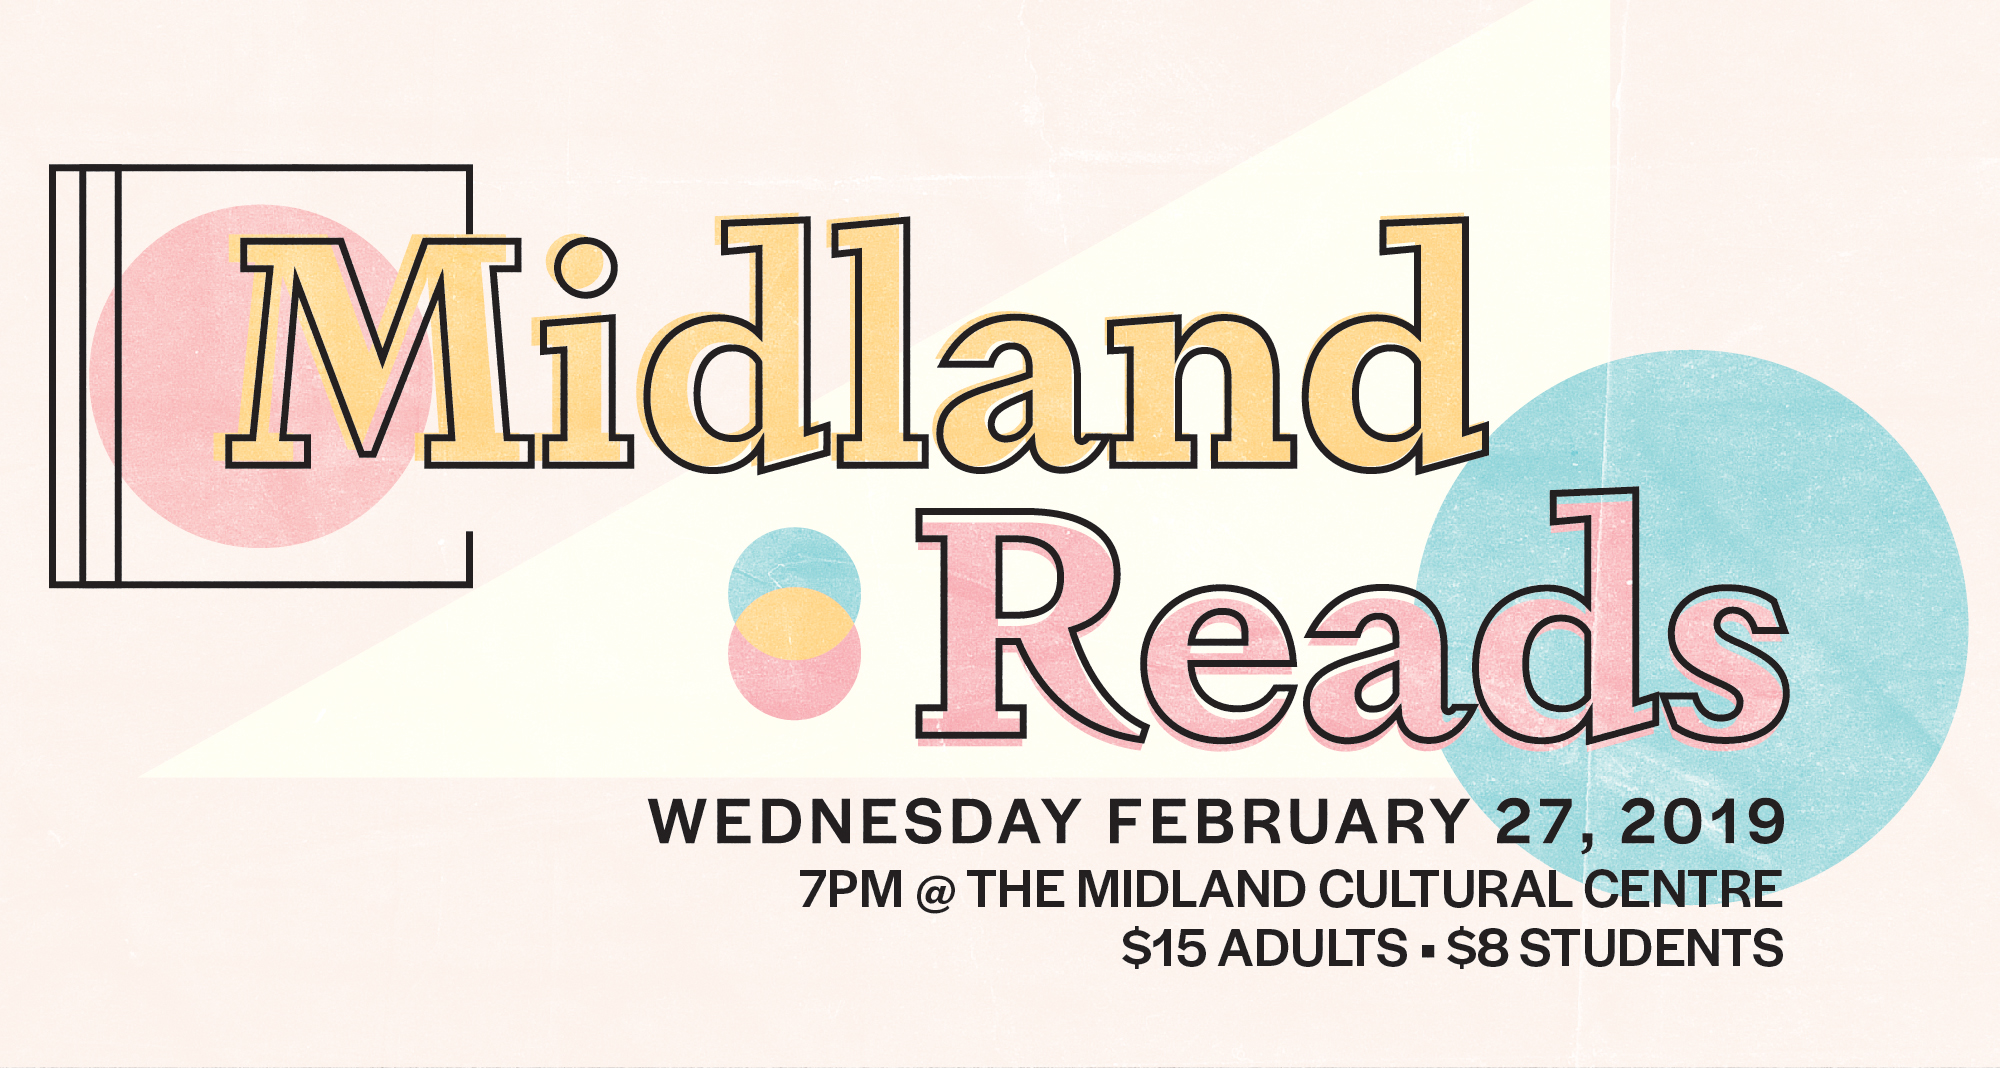 Midland Reads 2019, In Partnership With The Midland Cultural Centre